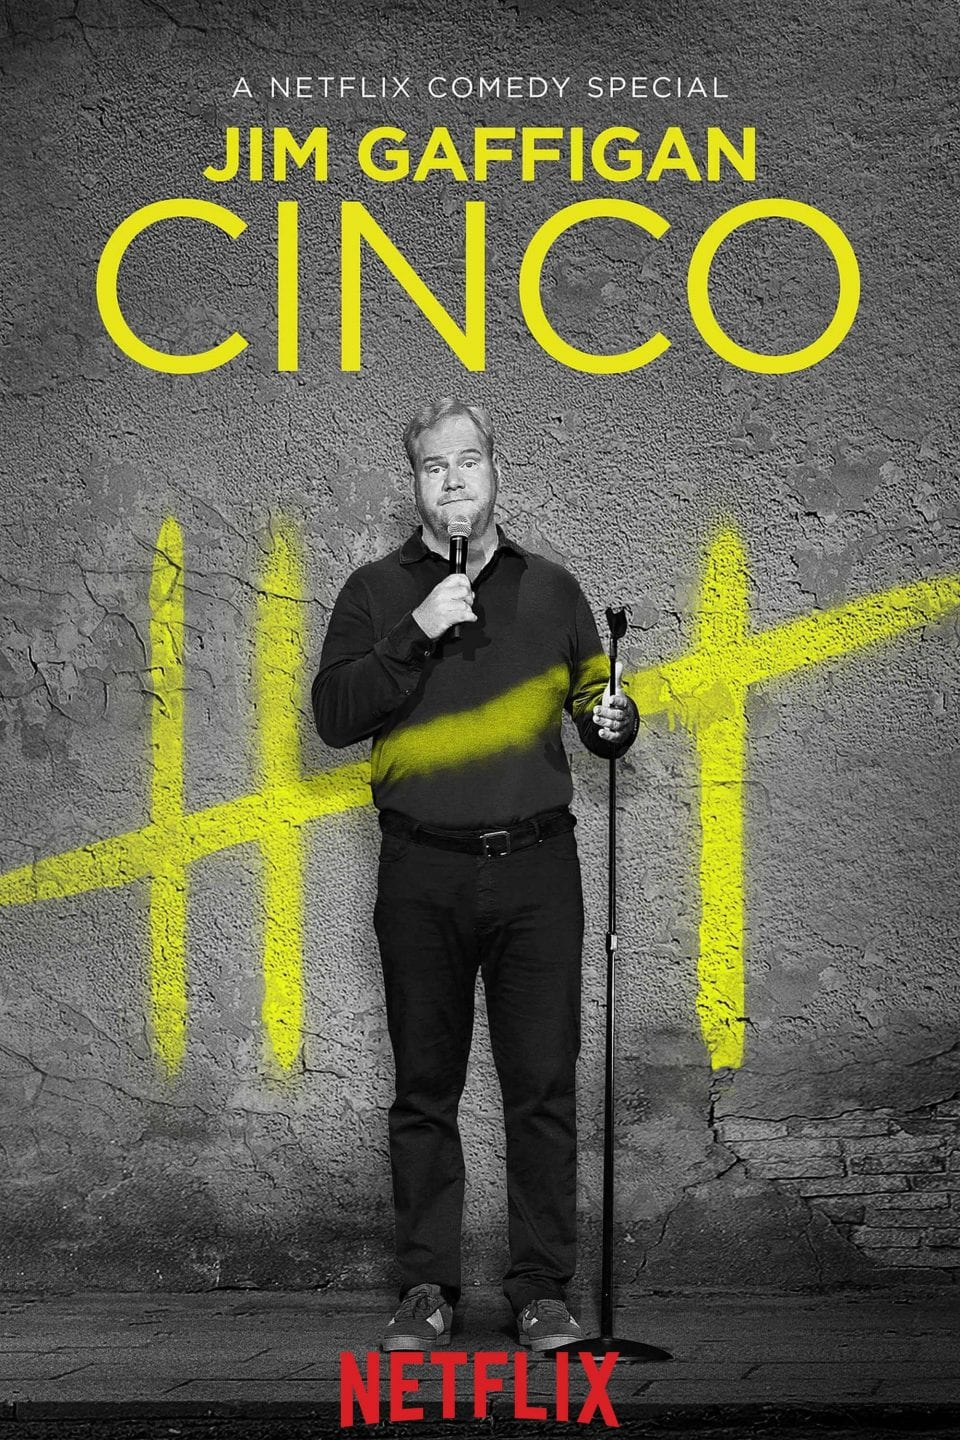 Jim Gaffigan Cinco Vertical